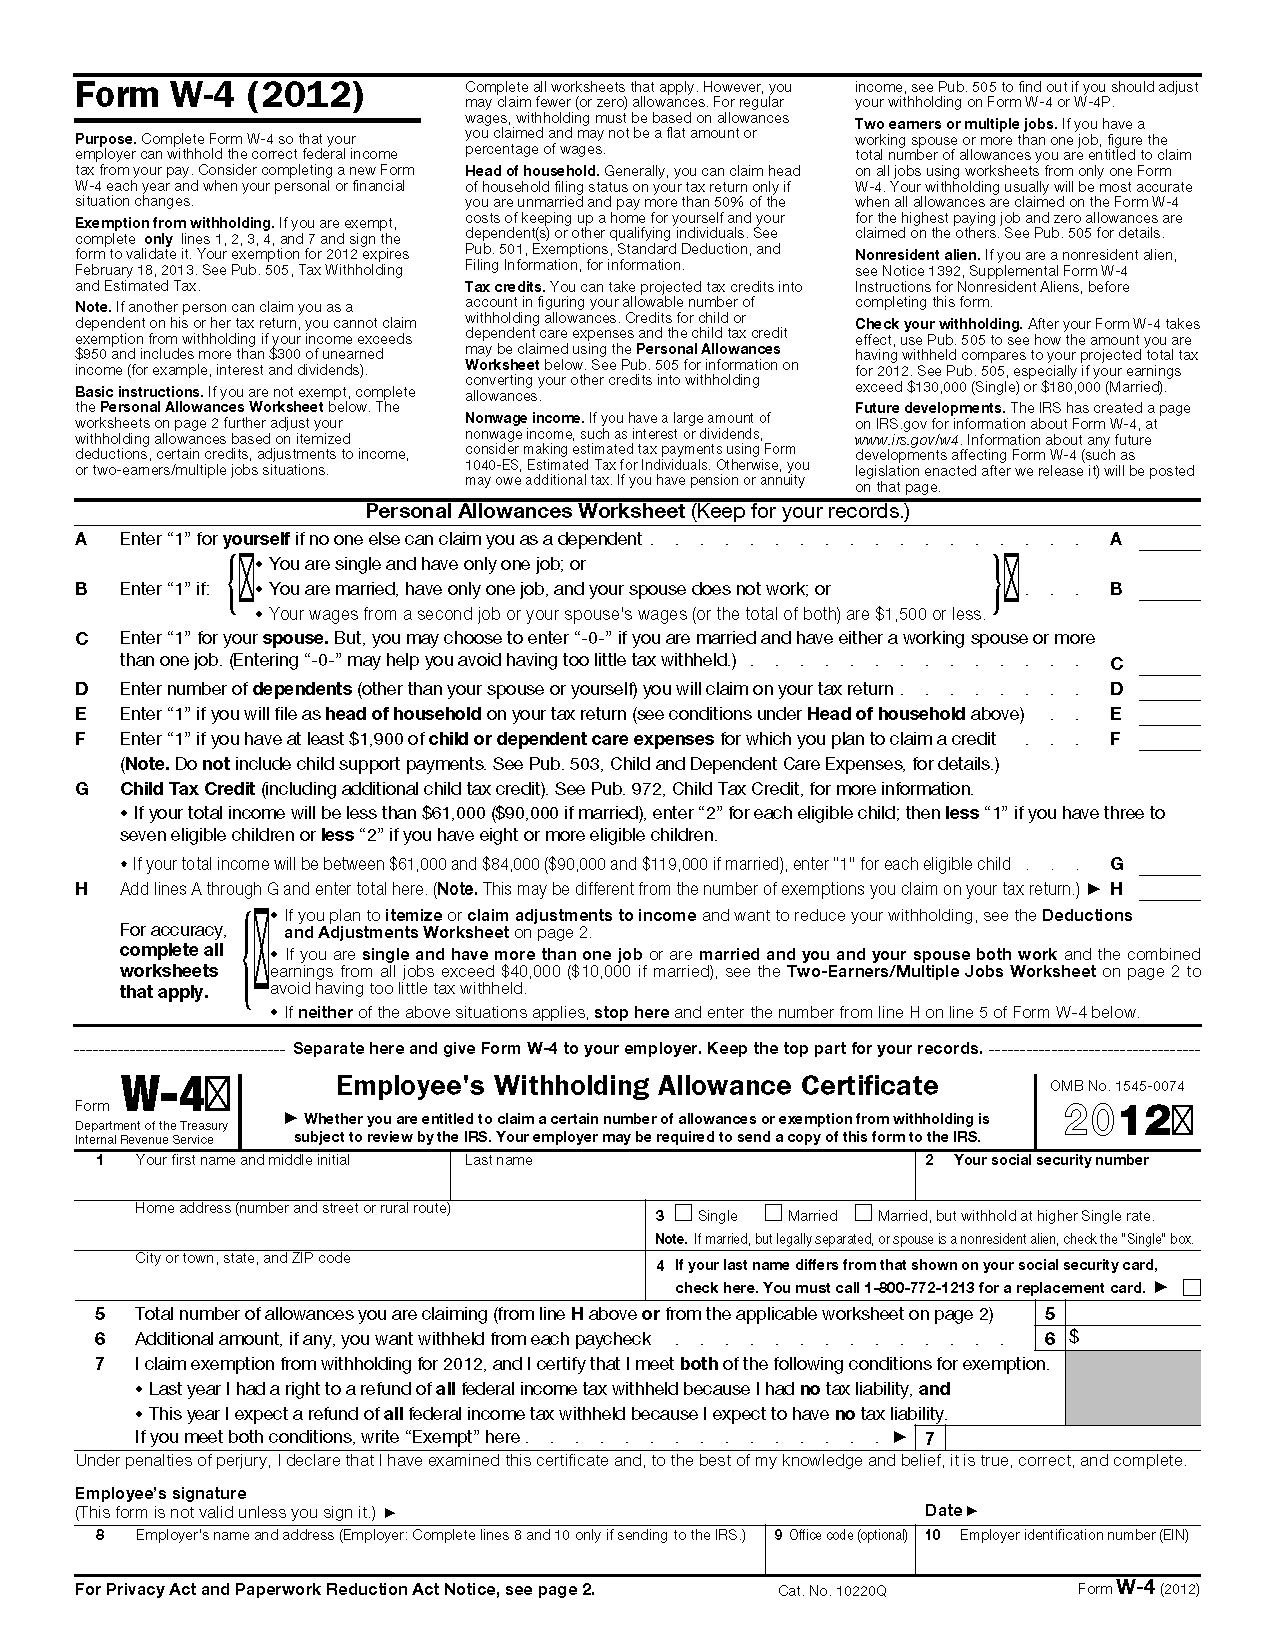 Form W4 Employees Withholding Allowance Certificate – Exemption Worksheet